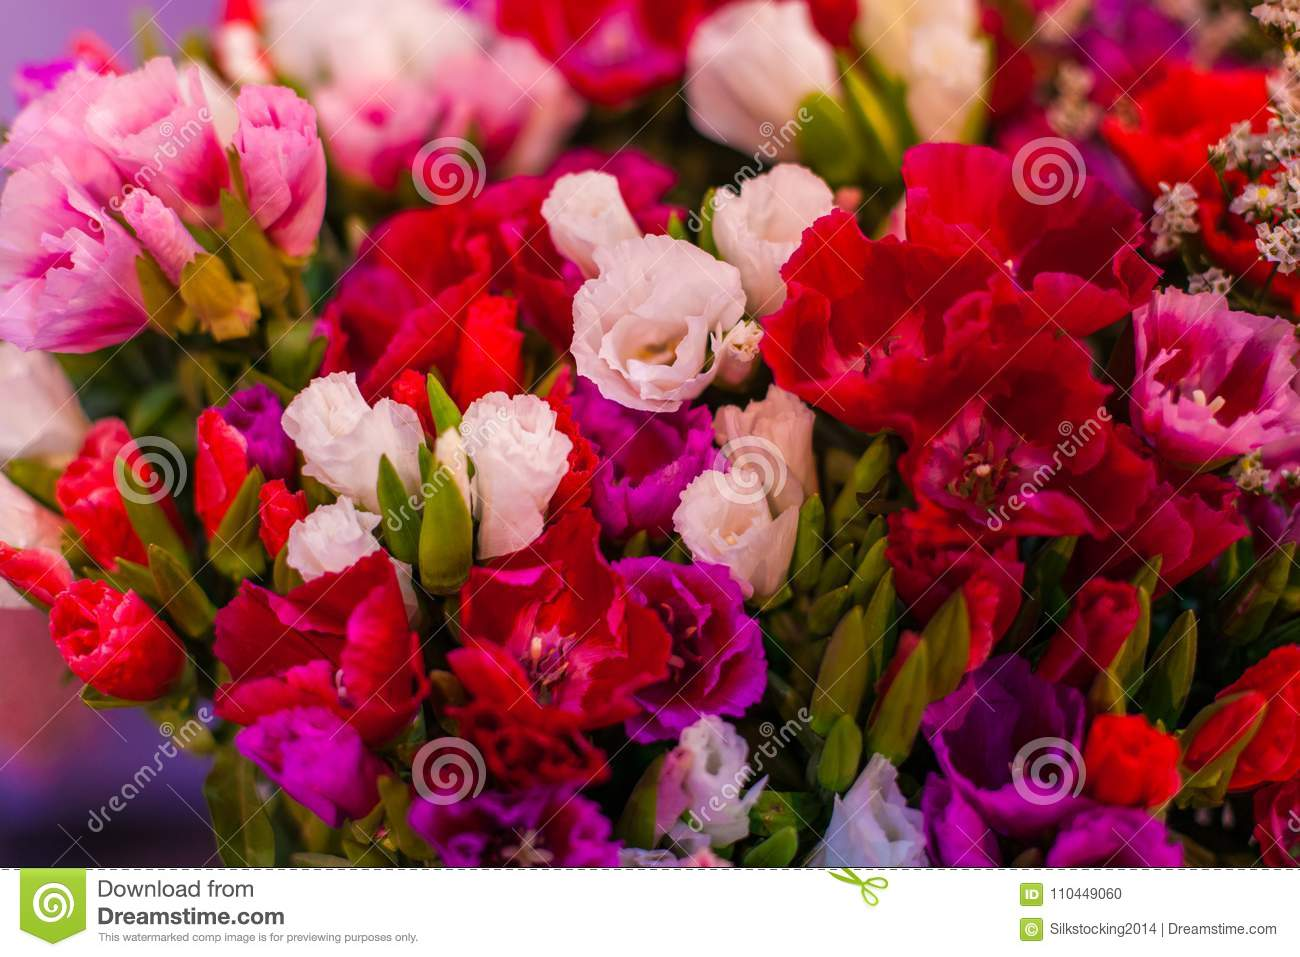 Buds Of Beautiful Multicolored Flowers. Stock Photo - Image of gift ...